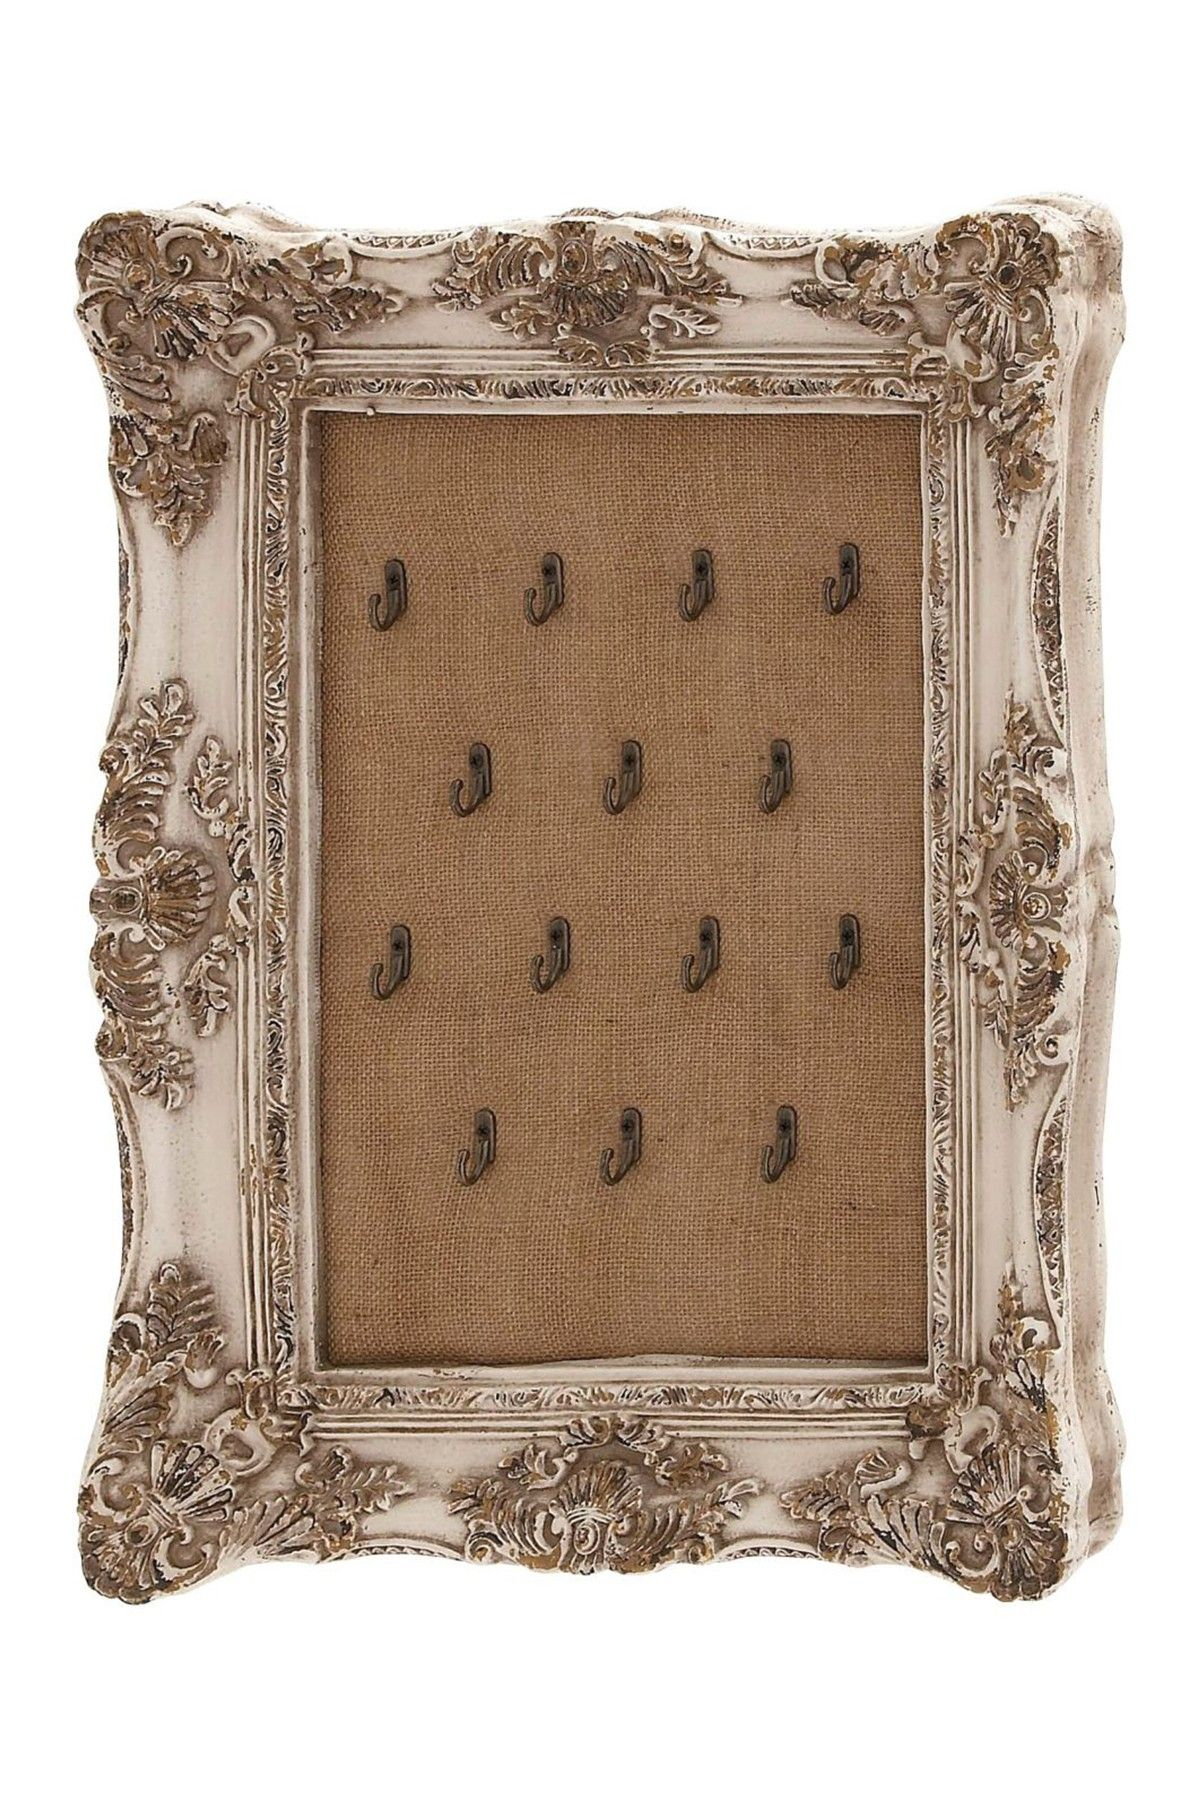 Brown Baroque Burlap Jewelry Hanger Frame By Uma On @Hautelook